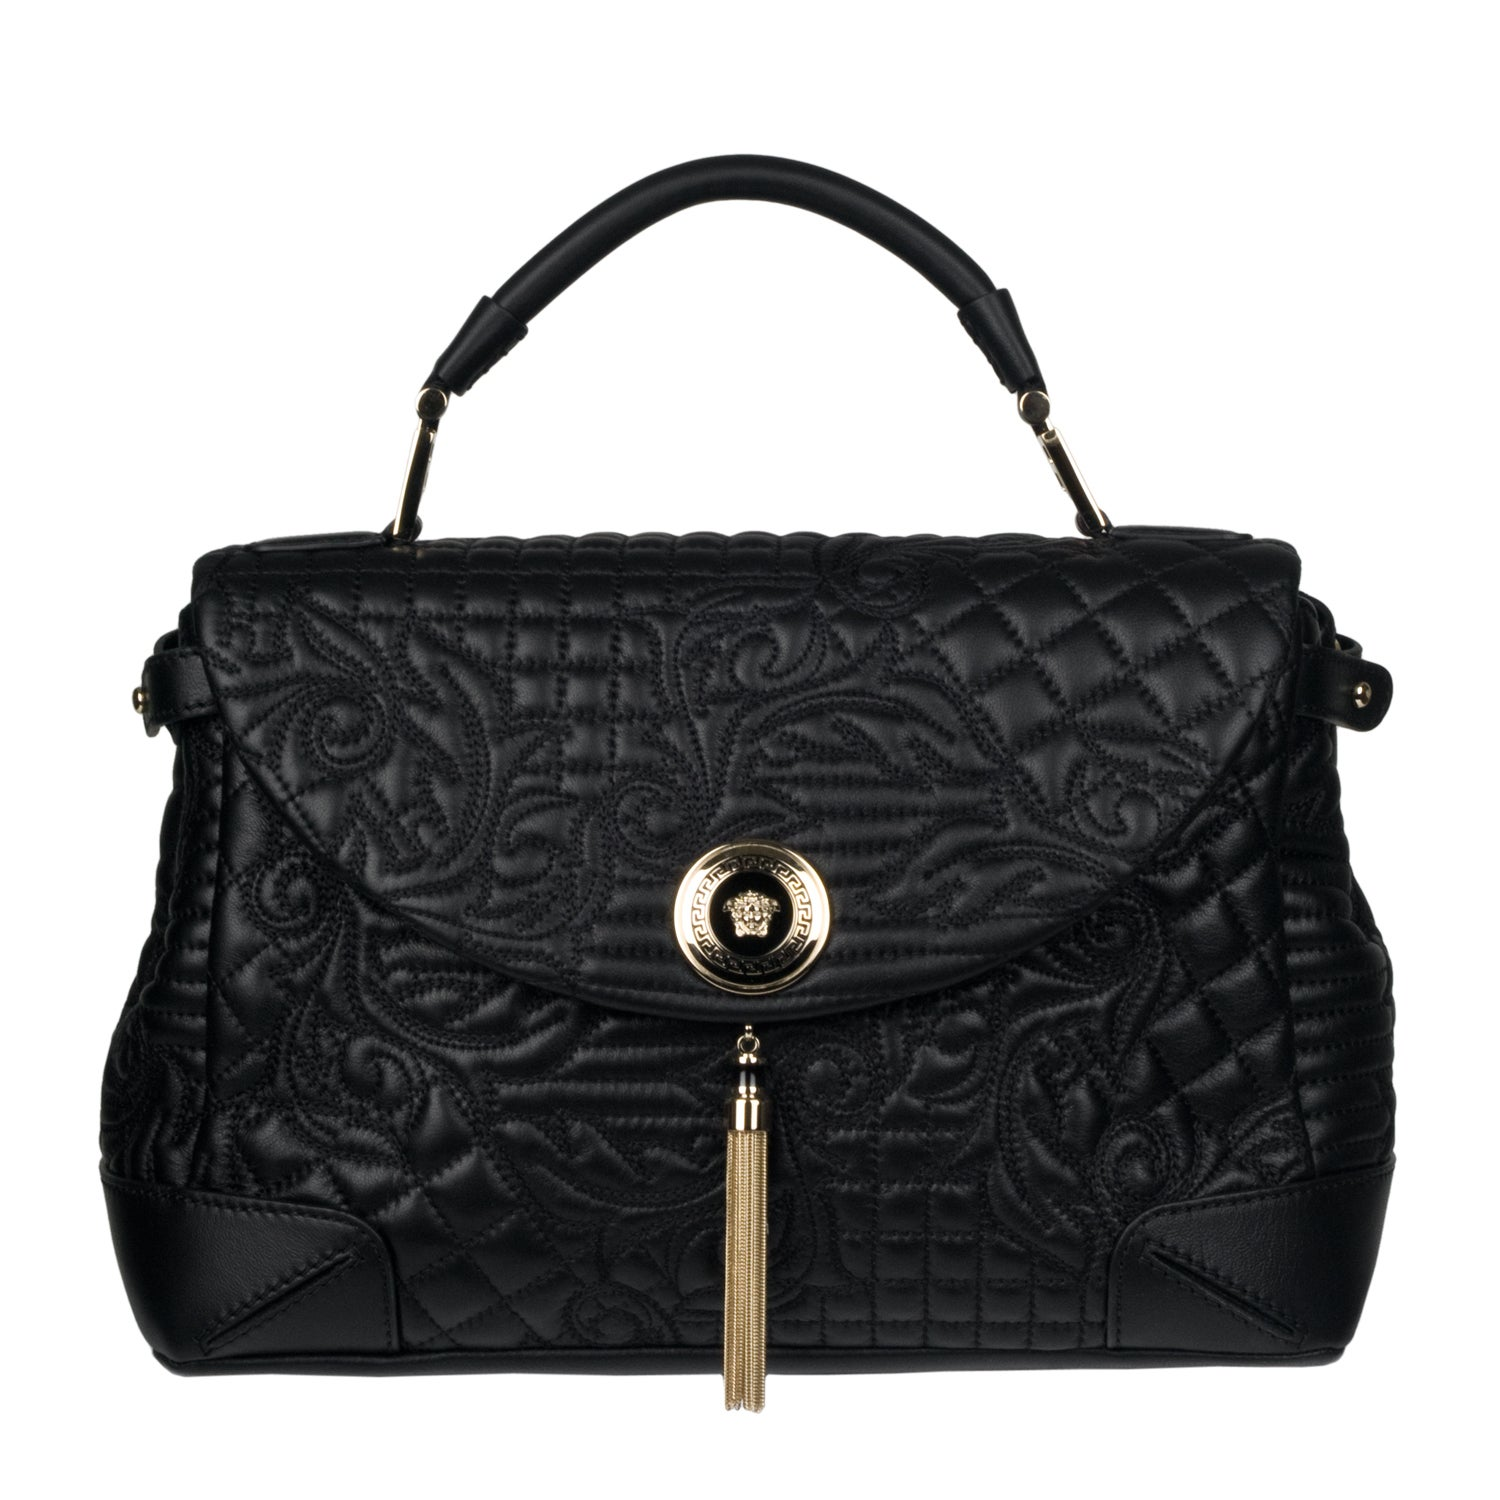 22340ae4f384 Shop Versace Black Embroidered Leather Satchel - Free Shipping Today -  Overstock.com - 6448911